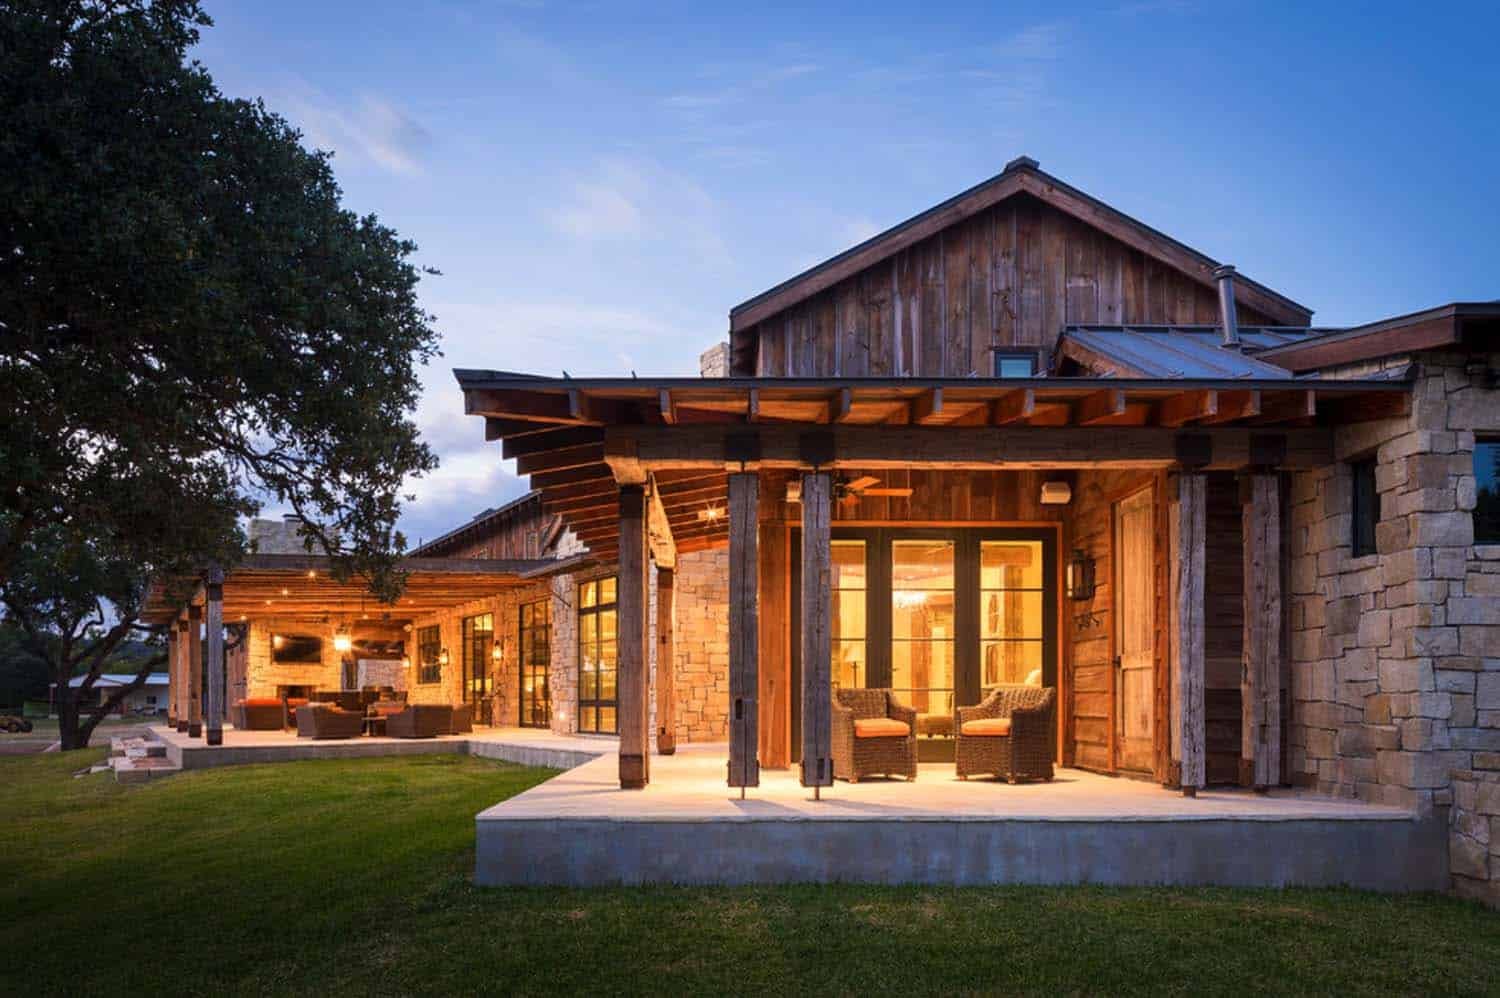 Modern rustic barn style retreat in texas hill country Ranch home design ideas